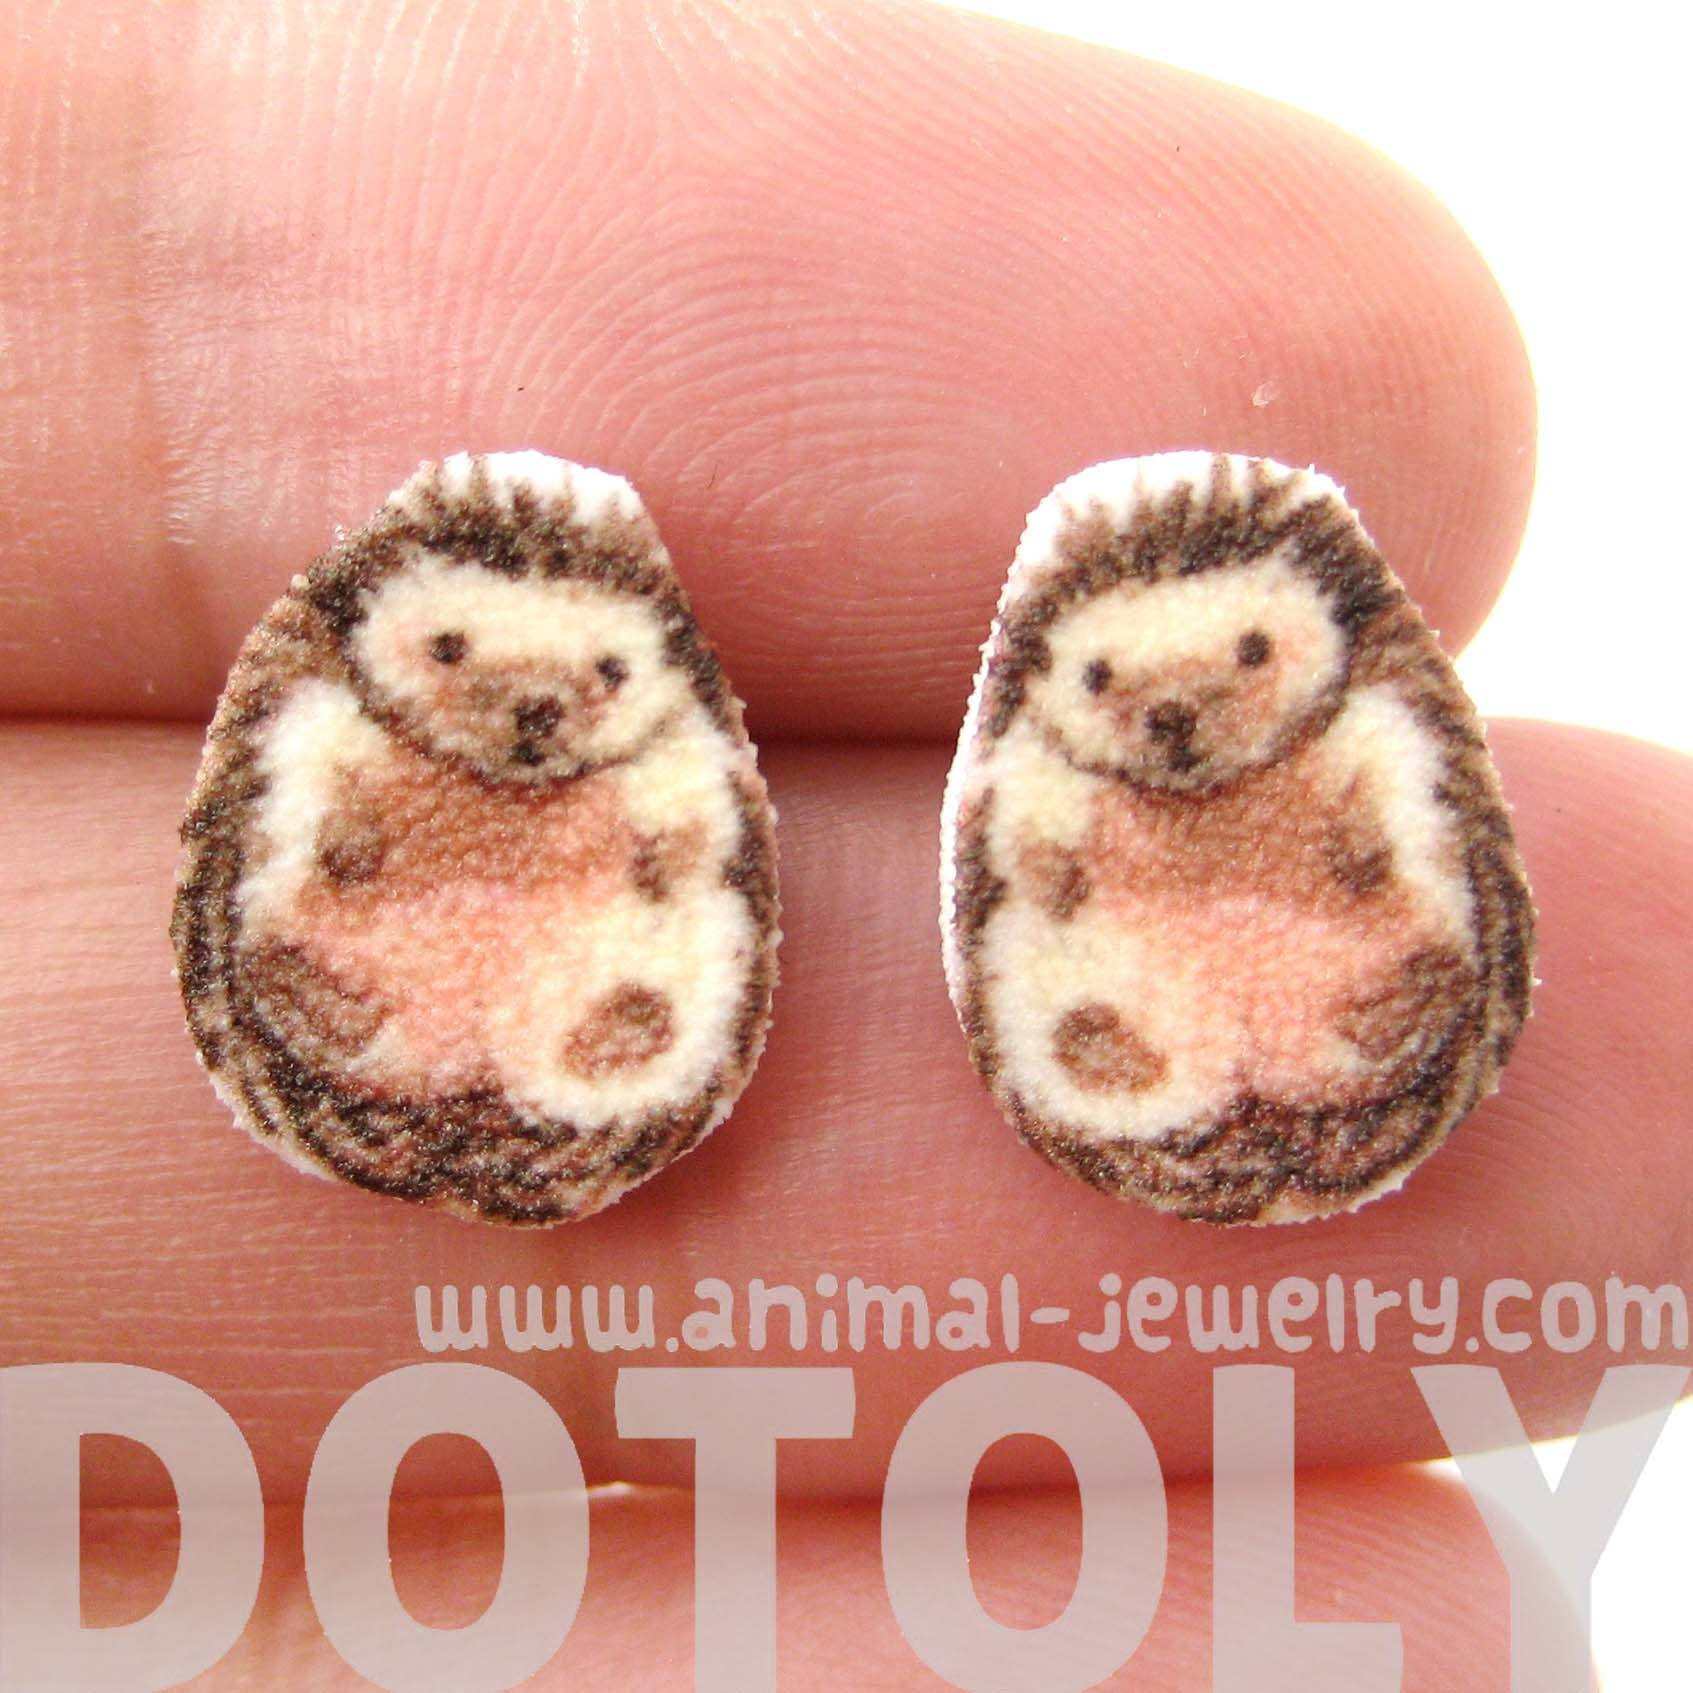 Adorable Hedgehog Porcupine Shaped Animal Stud Earrings | Handmade